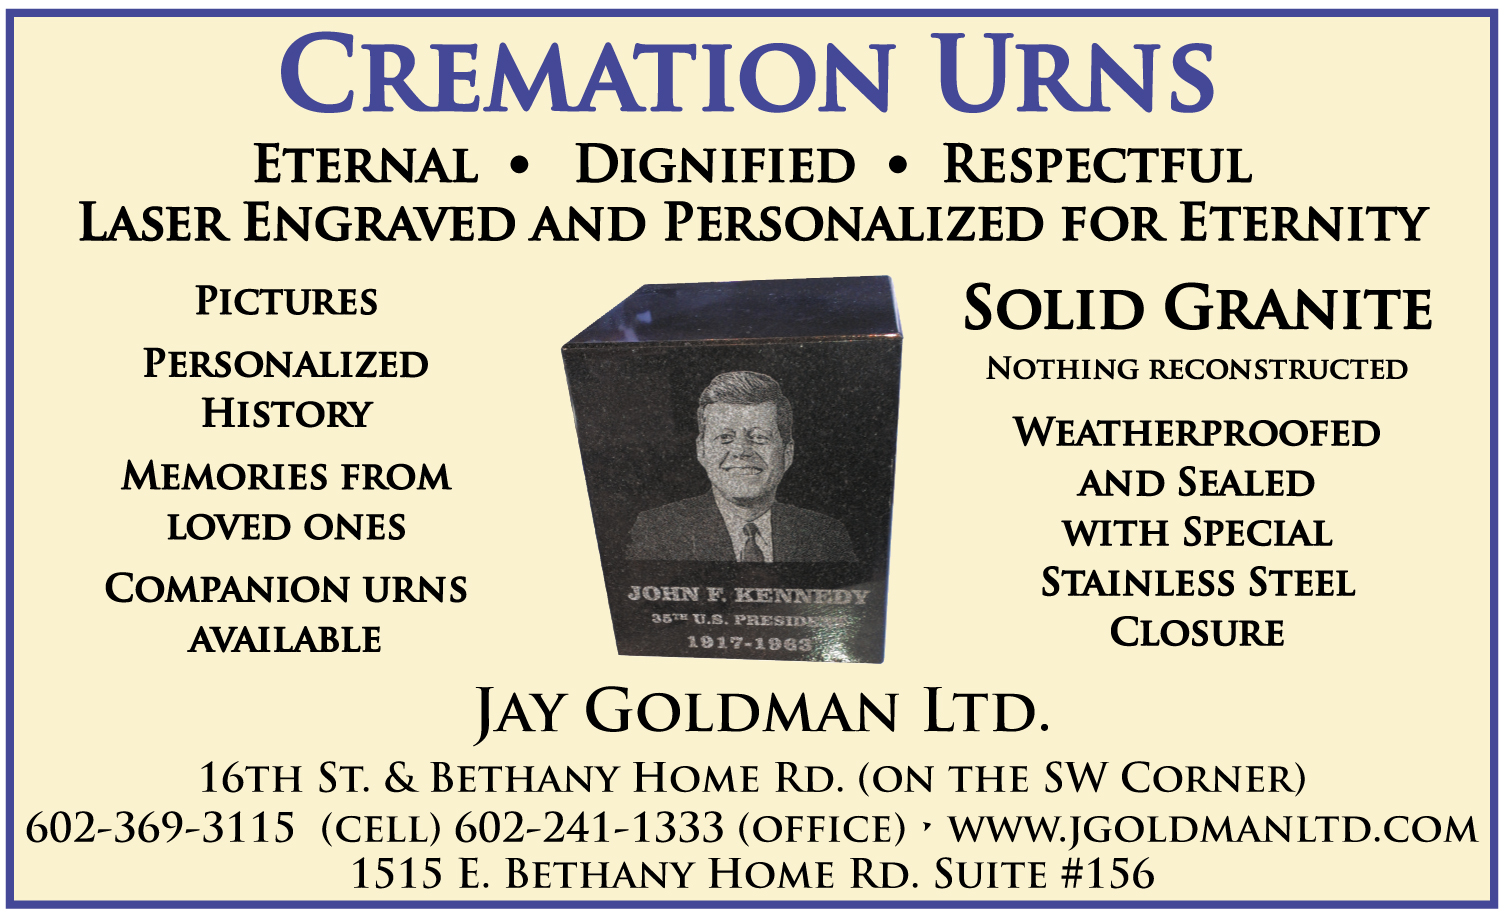 Jay Goldman Ltd.